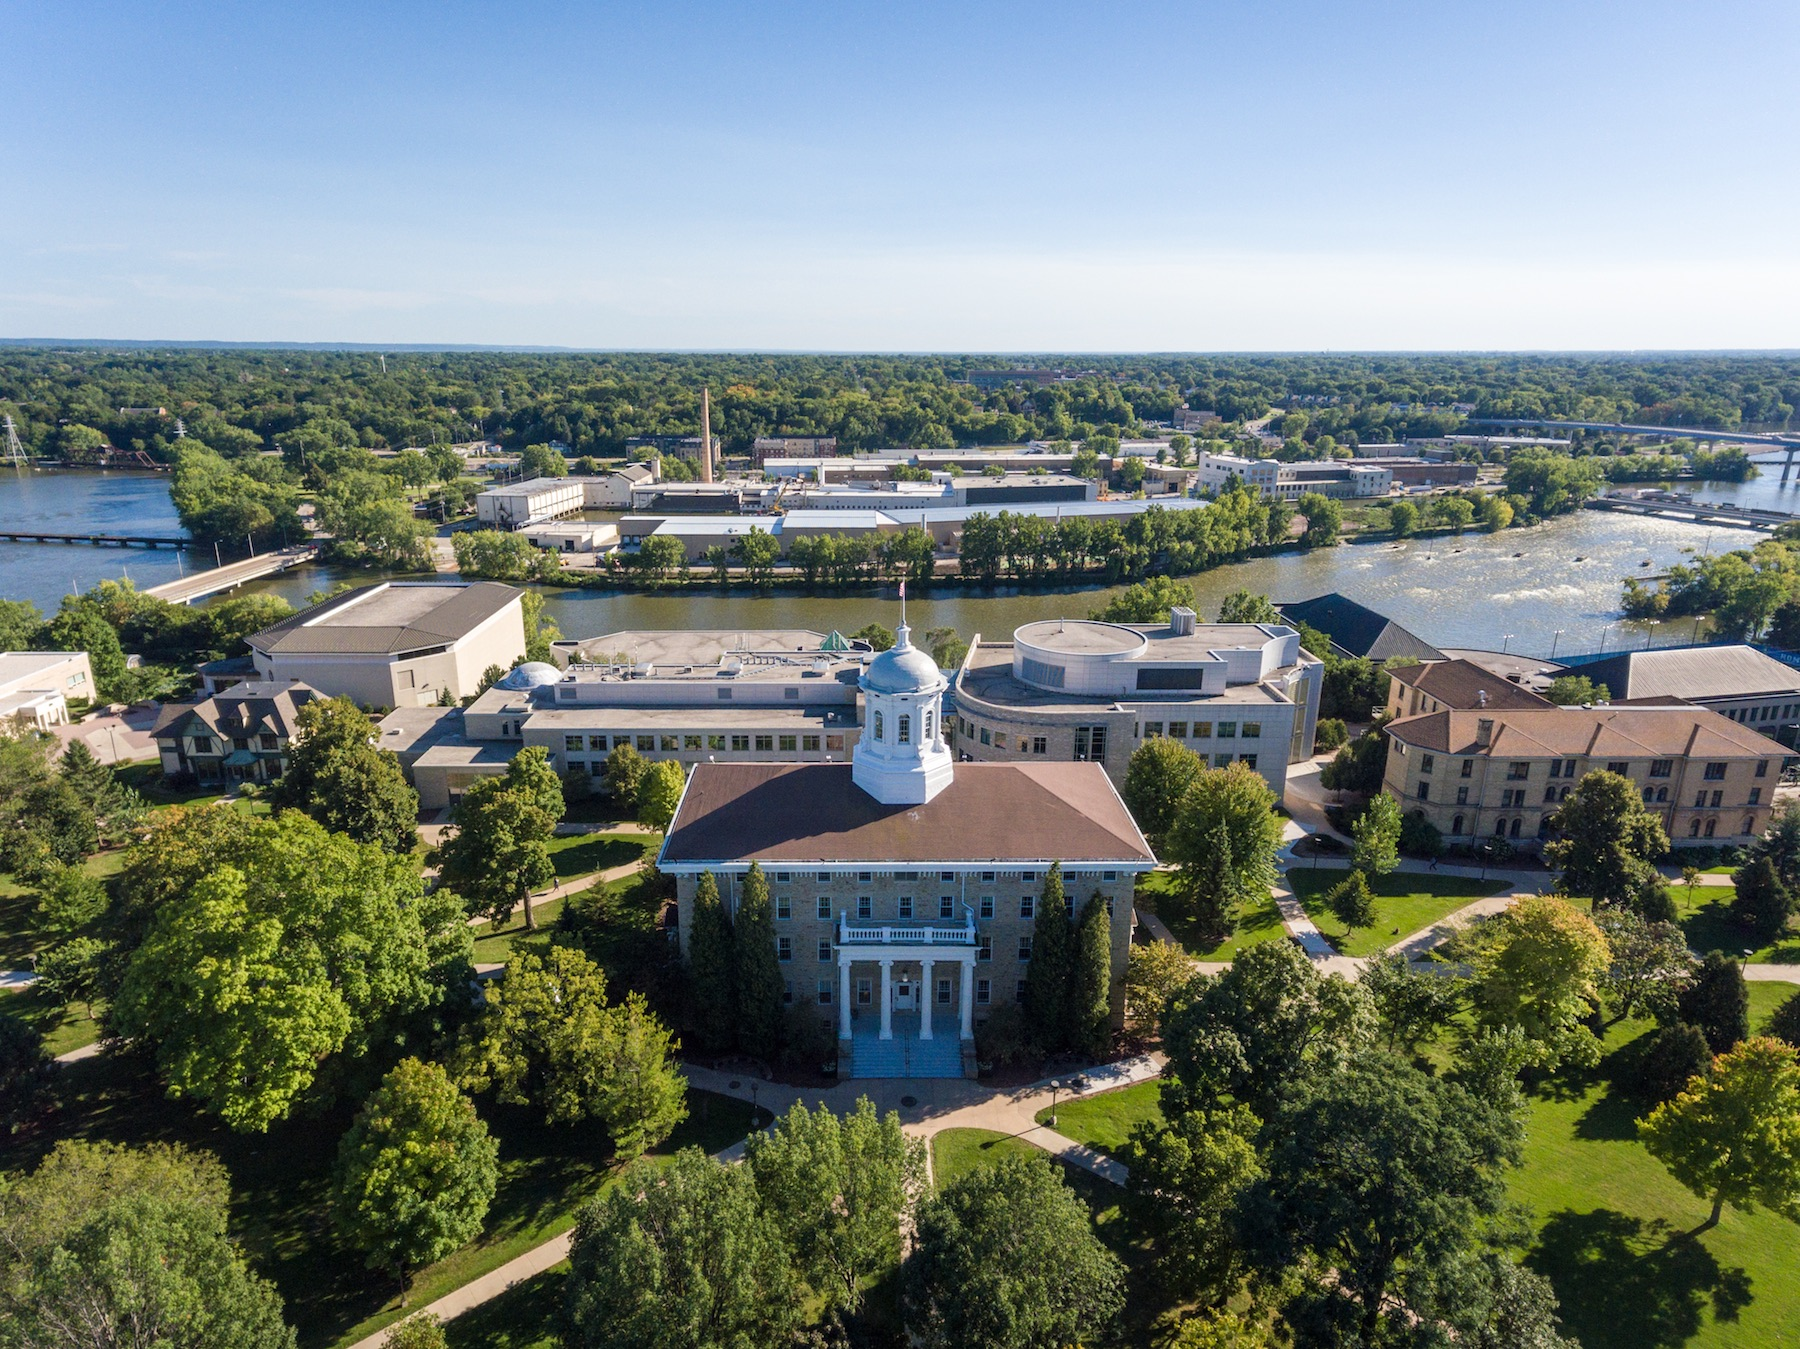 Aerial photo of the Lawrence campus showing Main Hall in the forefront.